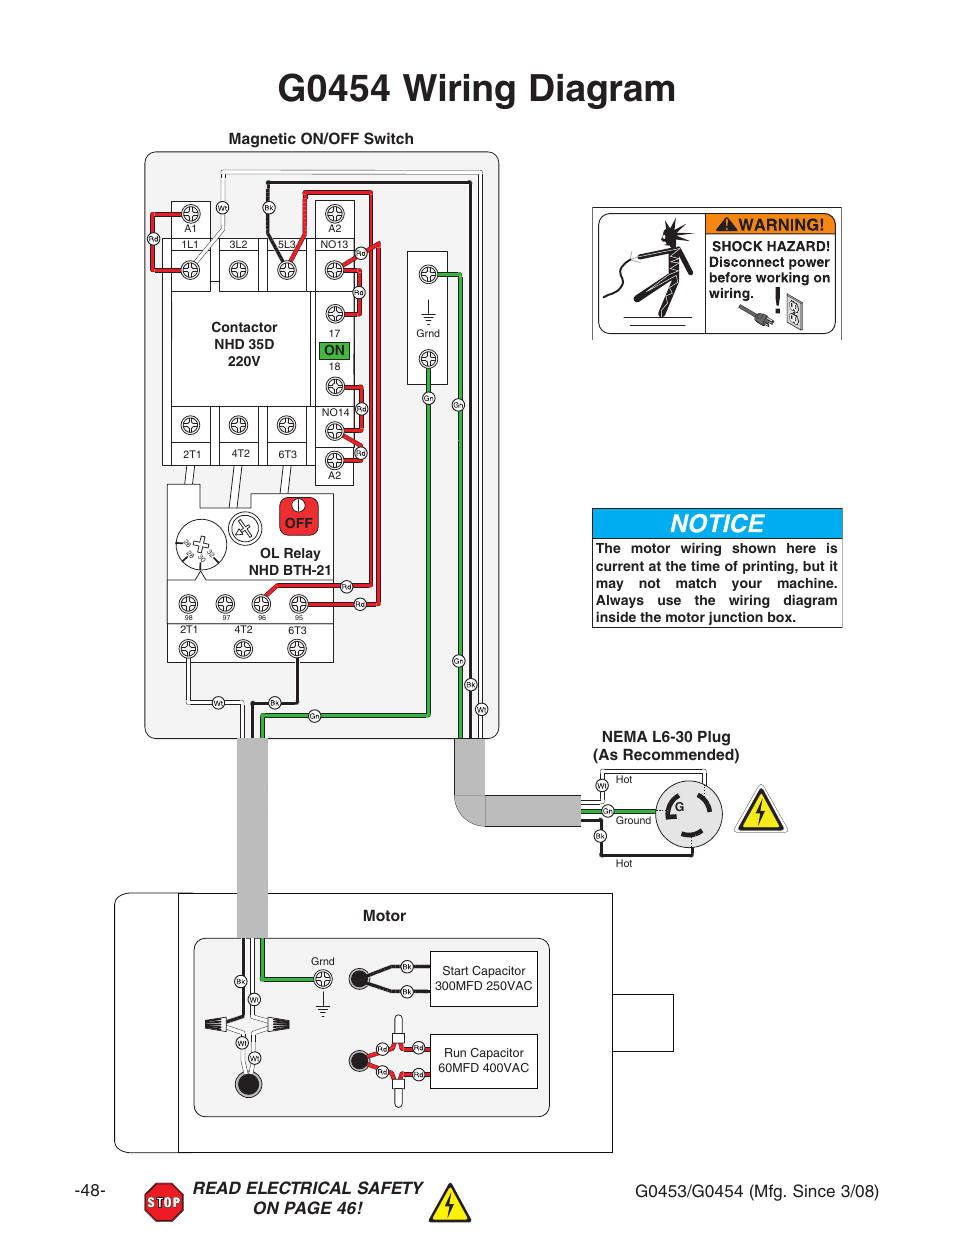 G0454 wiring diagram, Wiring diagram g0545 | Grizzly MOBILE PLANERS G0453  User Manual | Page 50 / 72